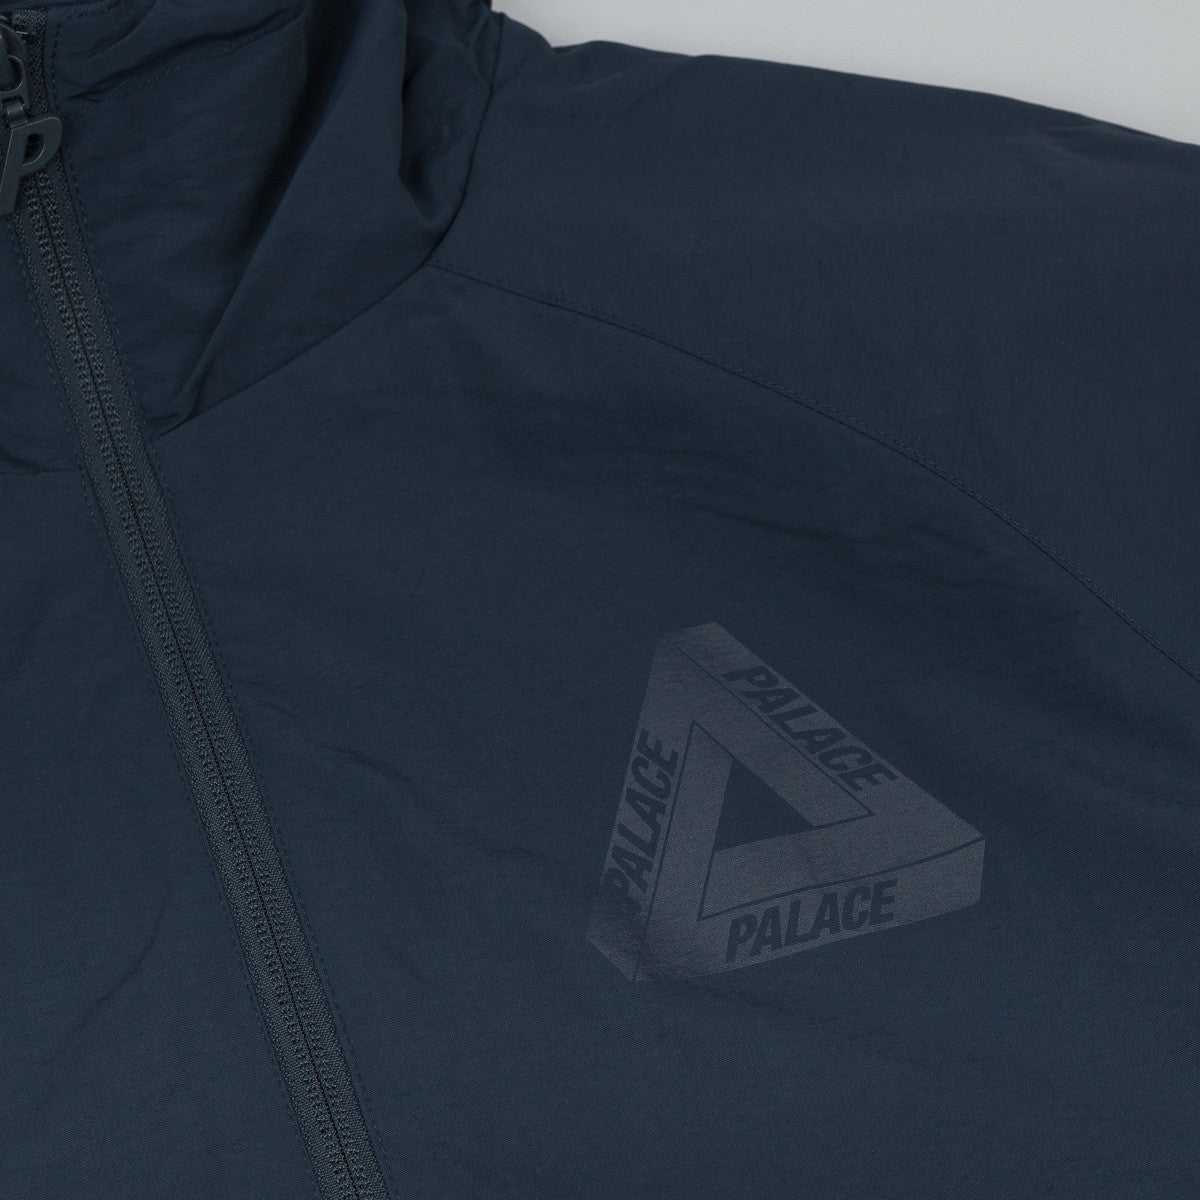 Palace Lighter Jacket - Blue Nights